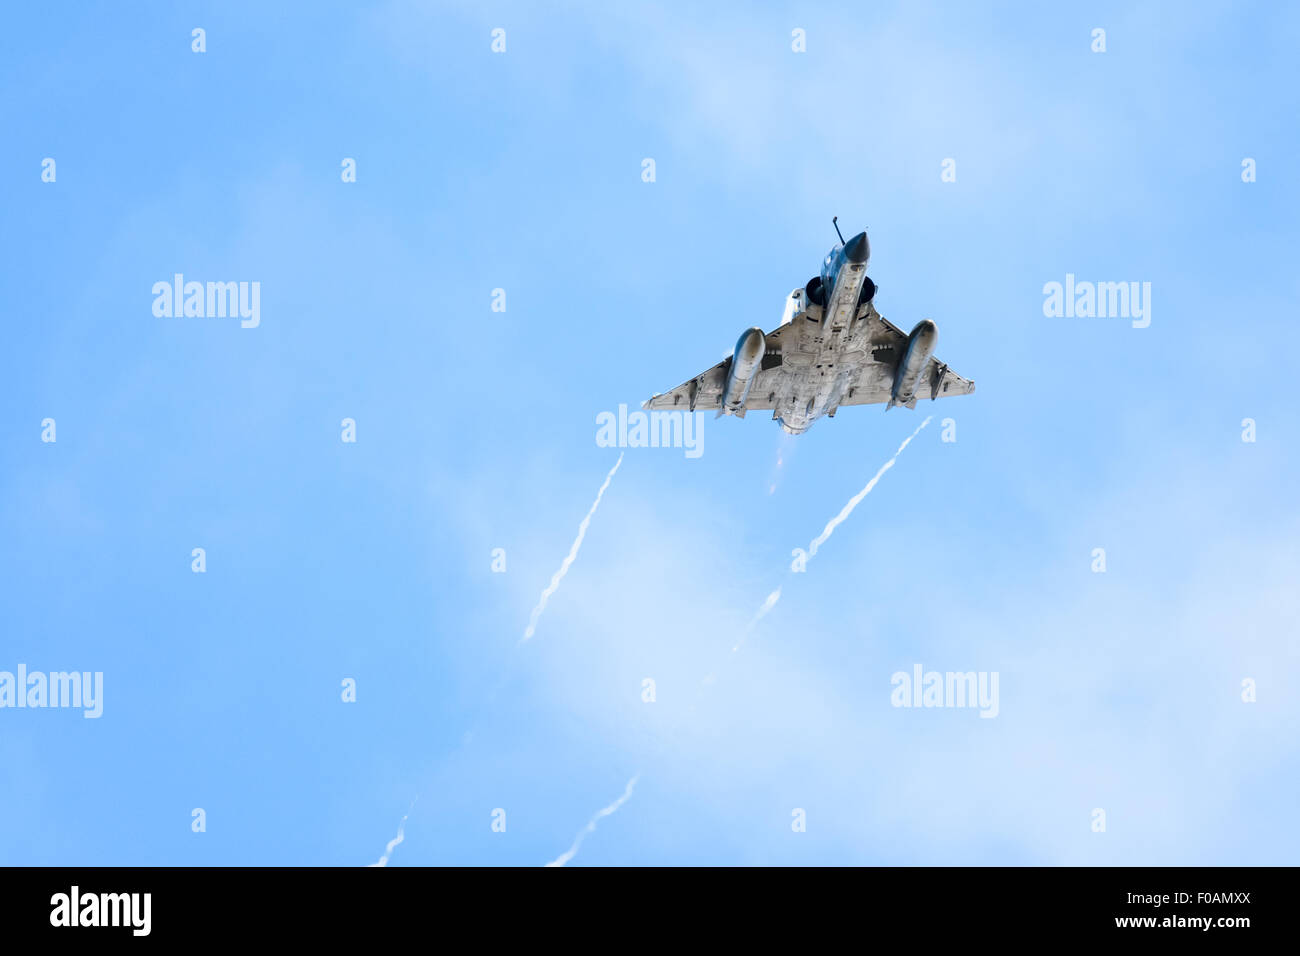 French Combat Aircraft Stock Photos & French Combat Aircraft